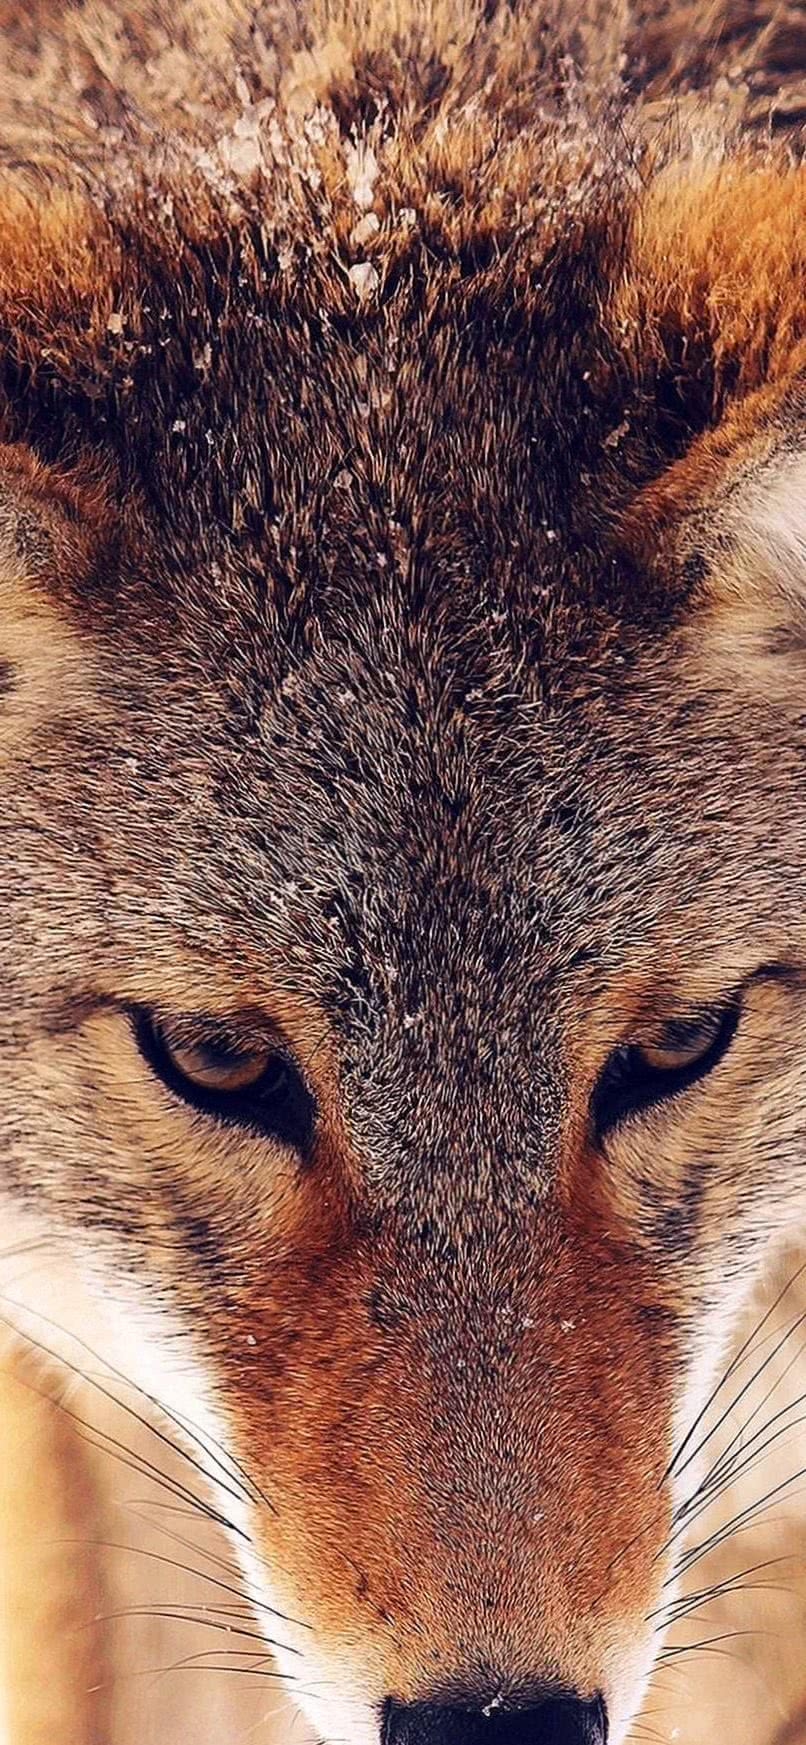 Wallpapers iPhone XS Wolf